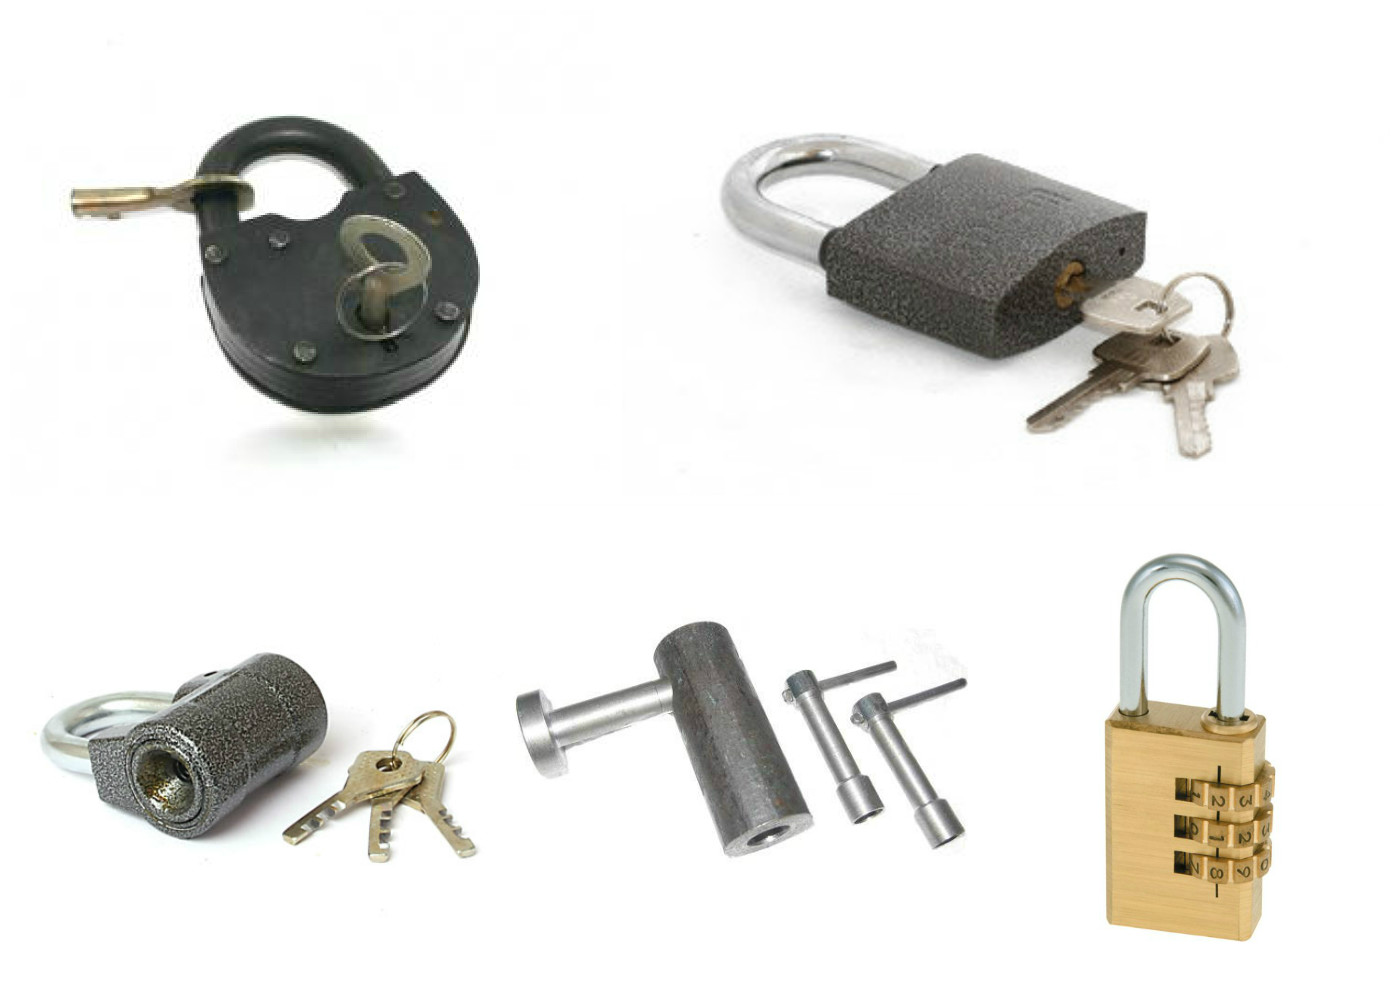 Types of padlocks according to the principle of operation of the locking mechanism